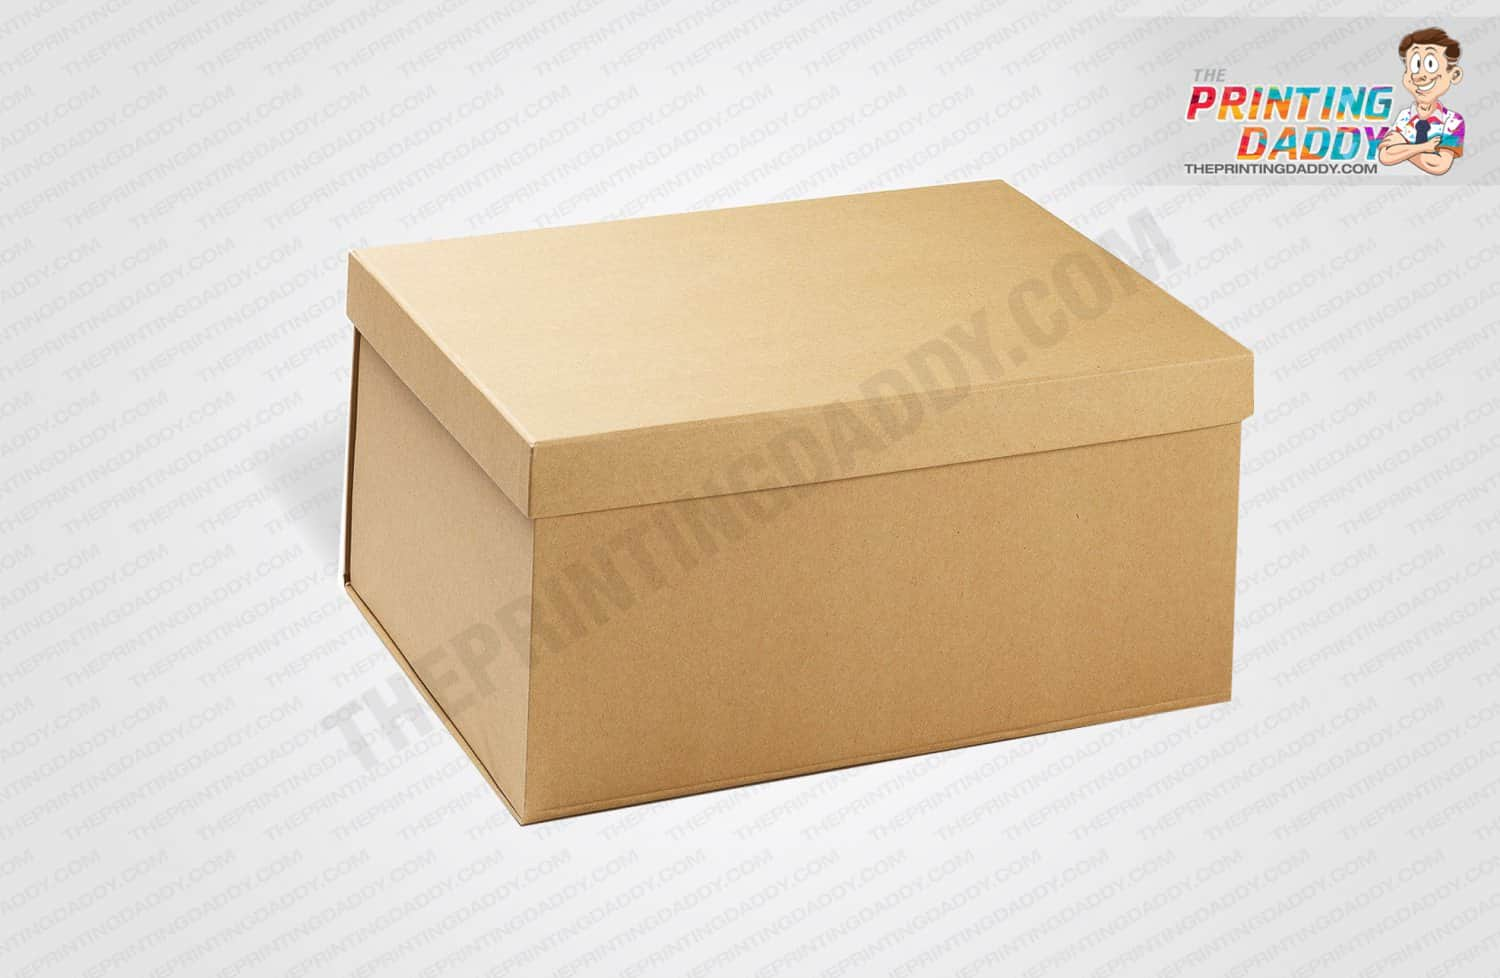 Brown Box with Lid The Printing Daddy